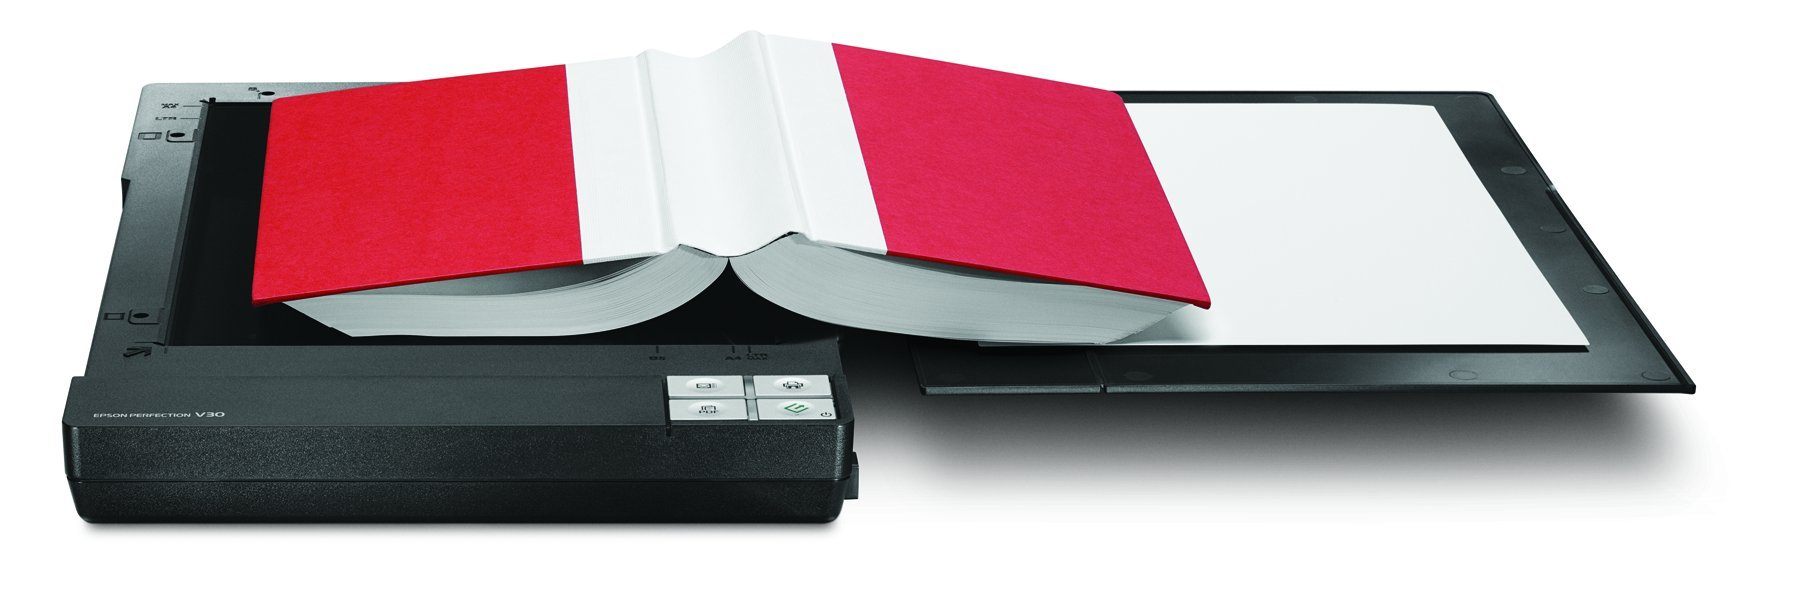 Epson B11B193141 Perfection V30 Photo Scanner by Epson (Image #3)